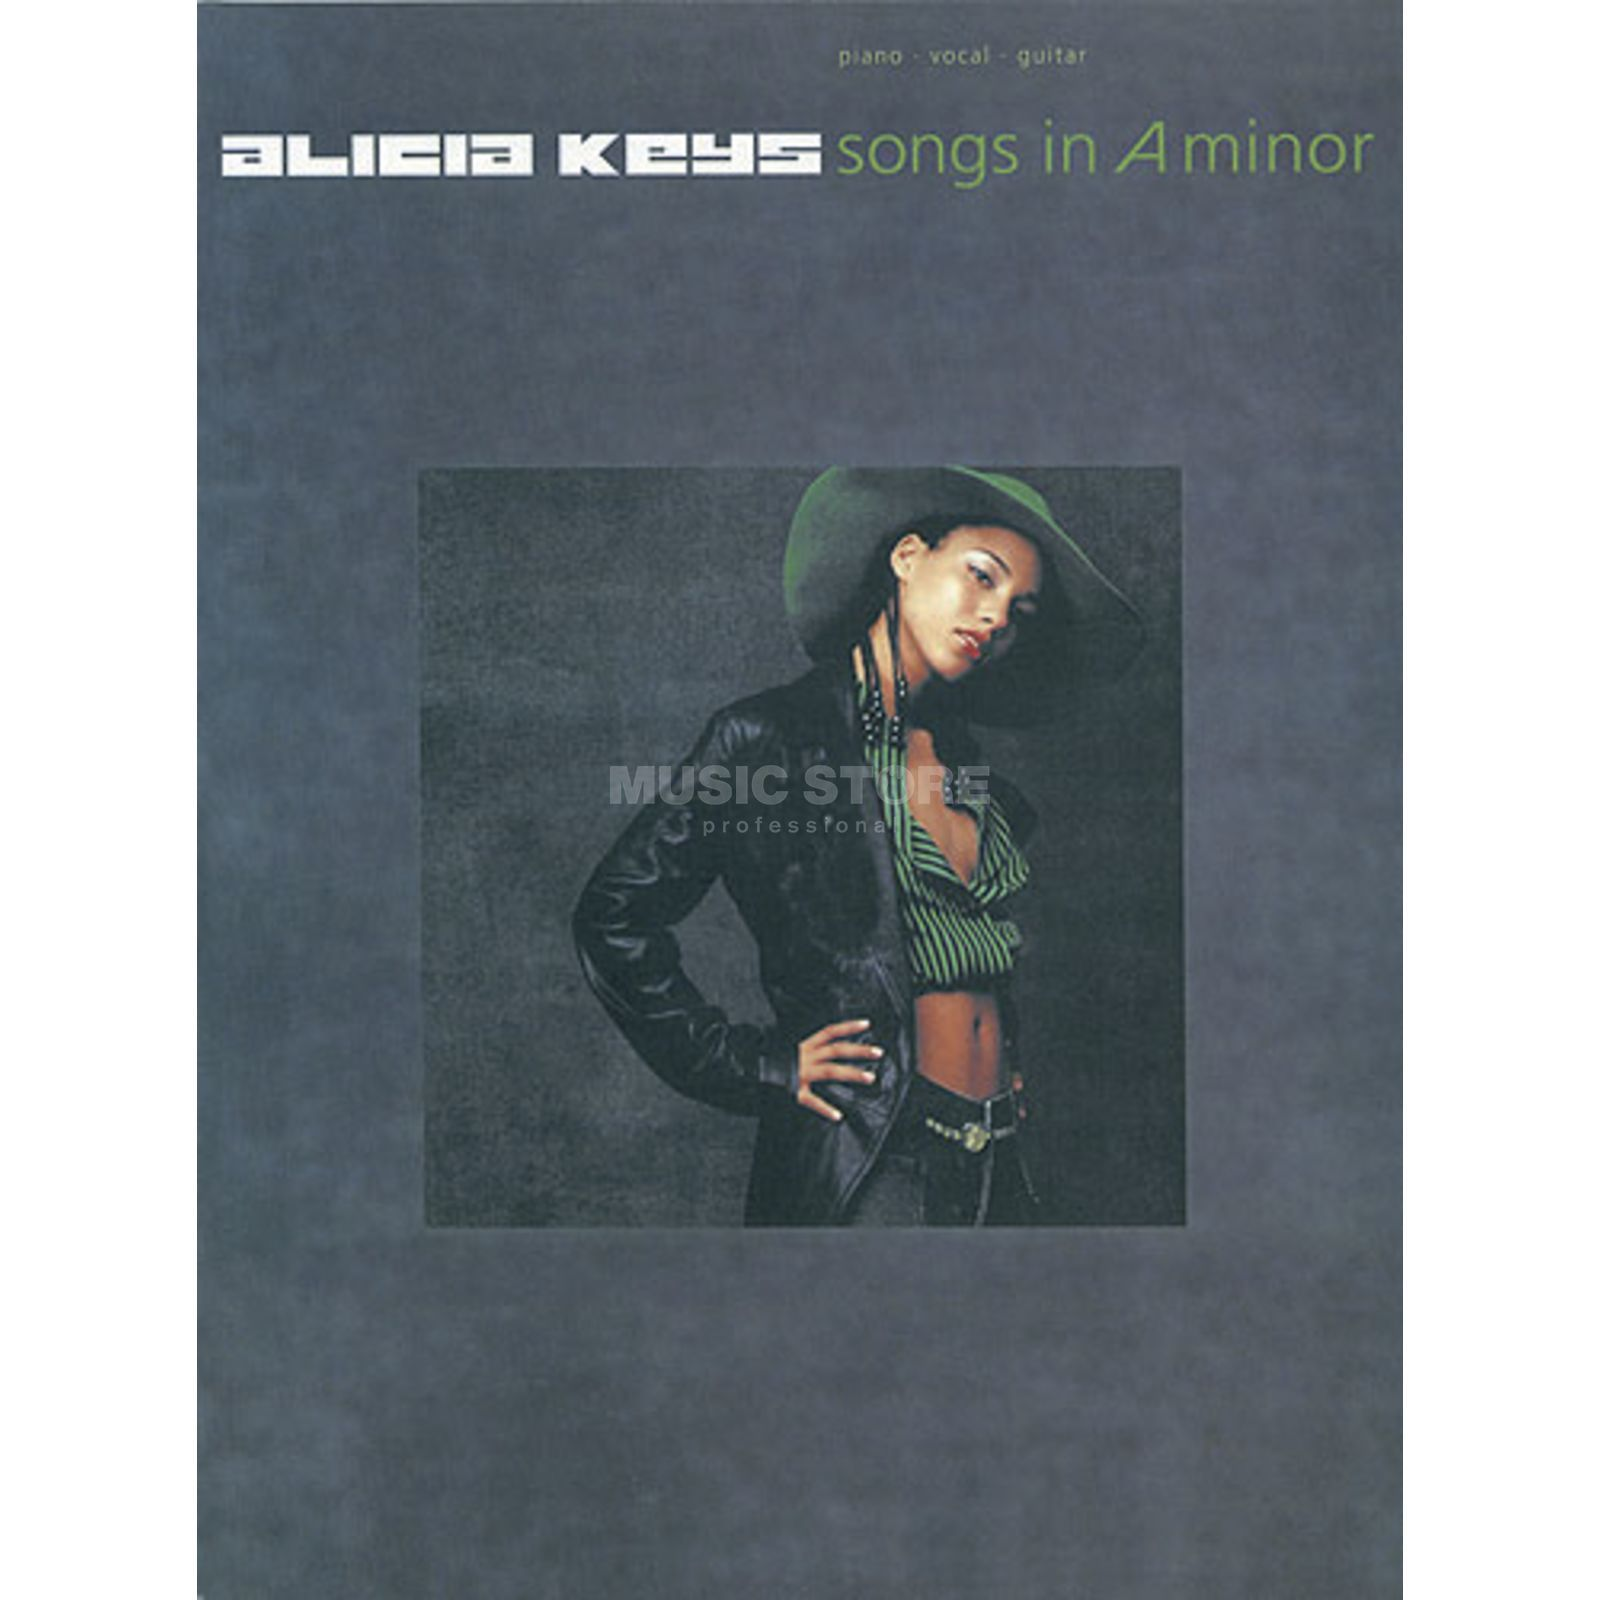 Hal Leonard Alicia Keys: Songs in A minor PVG Produktbillede